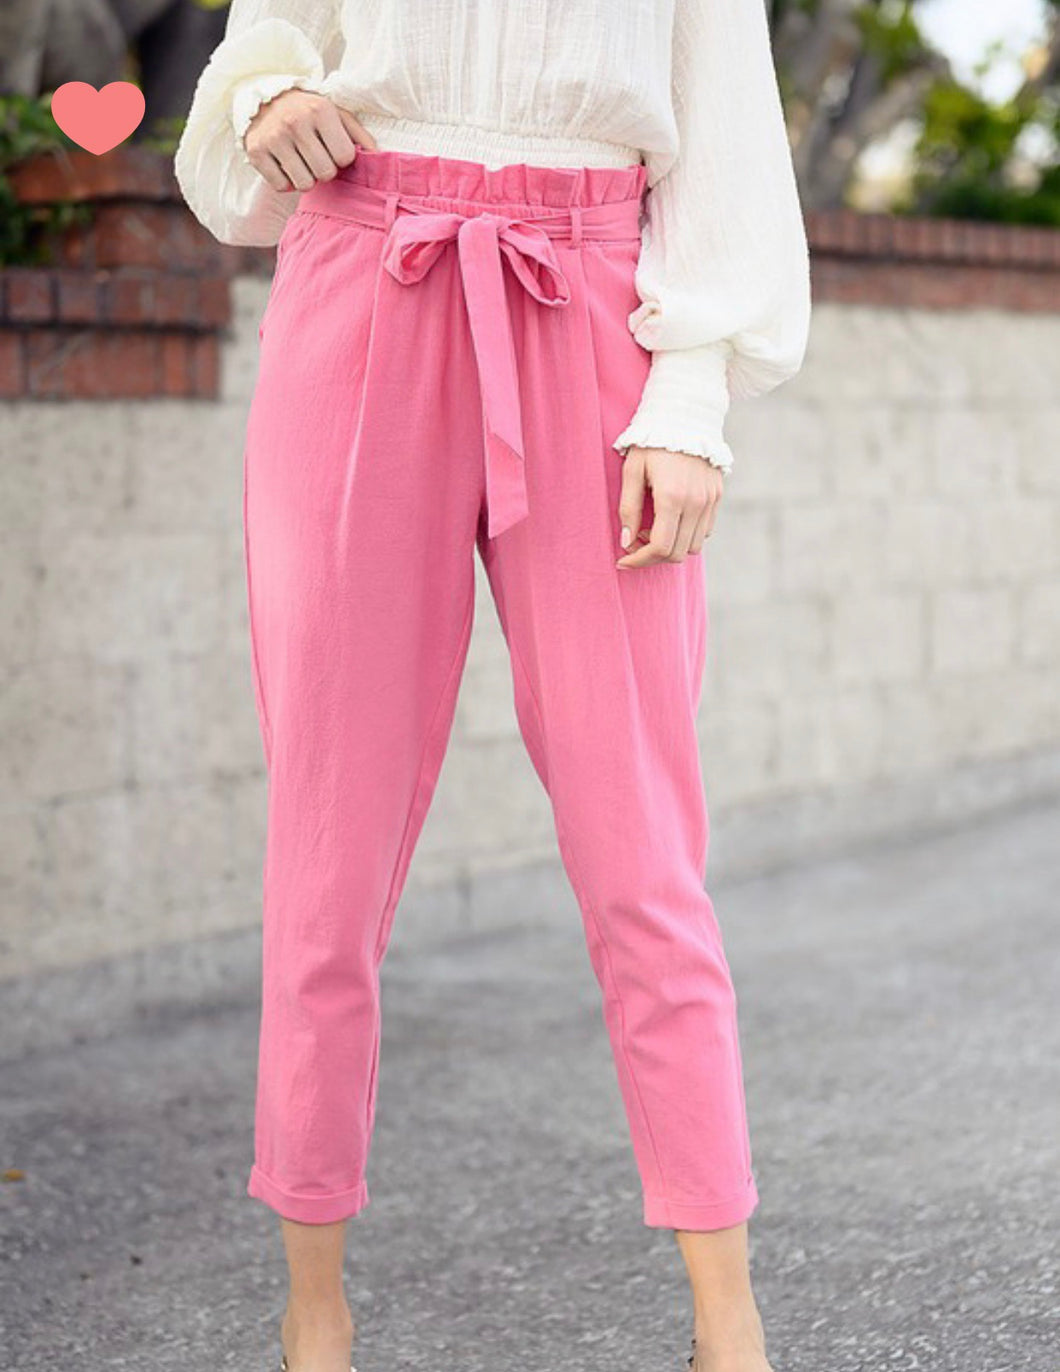 Emmalee Linen Pants - Blush